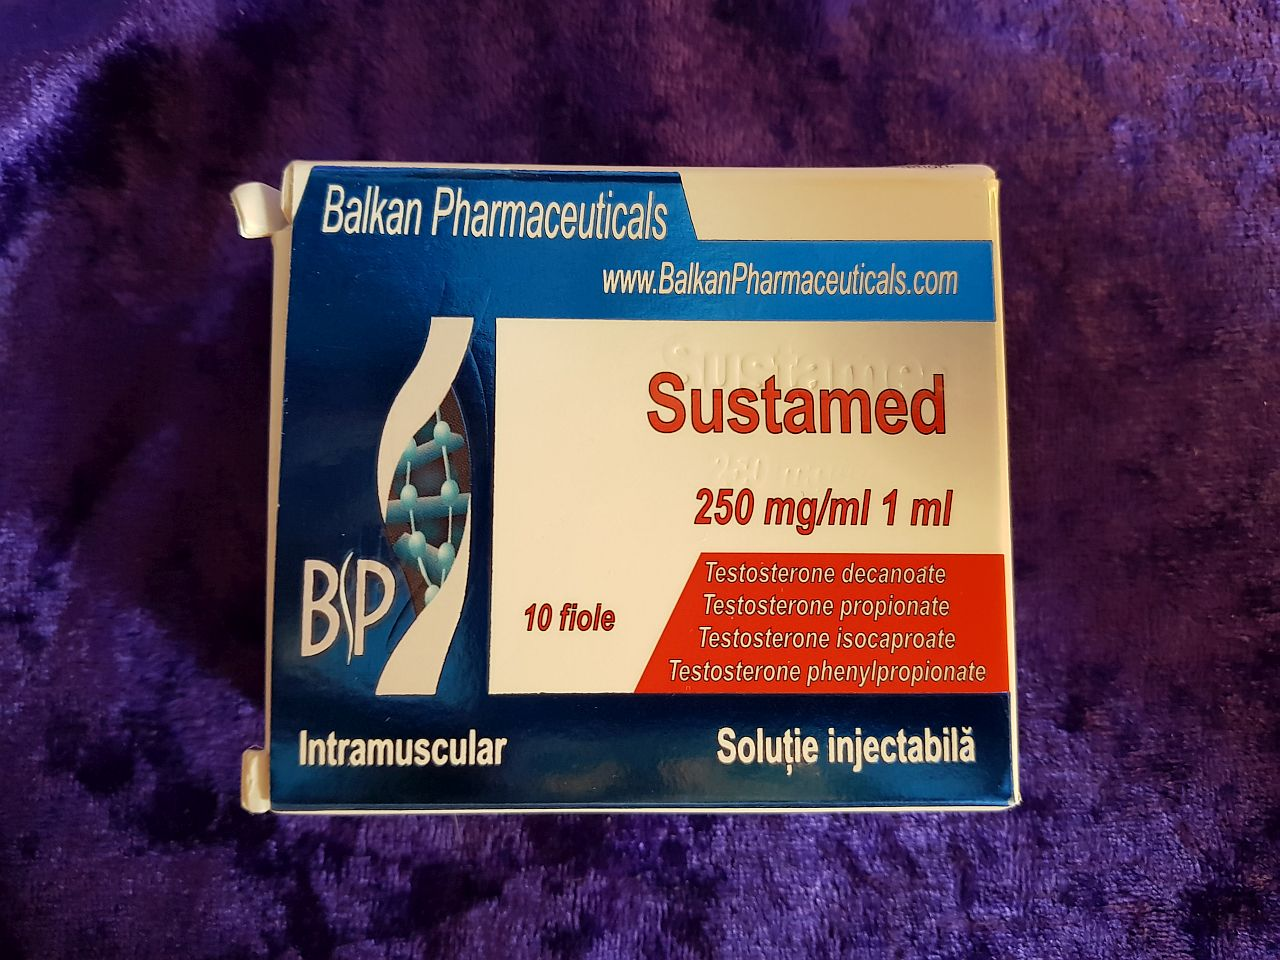 Balkan Pharma Sustamed Is One of the Top Testosterone Mixtures